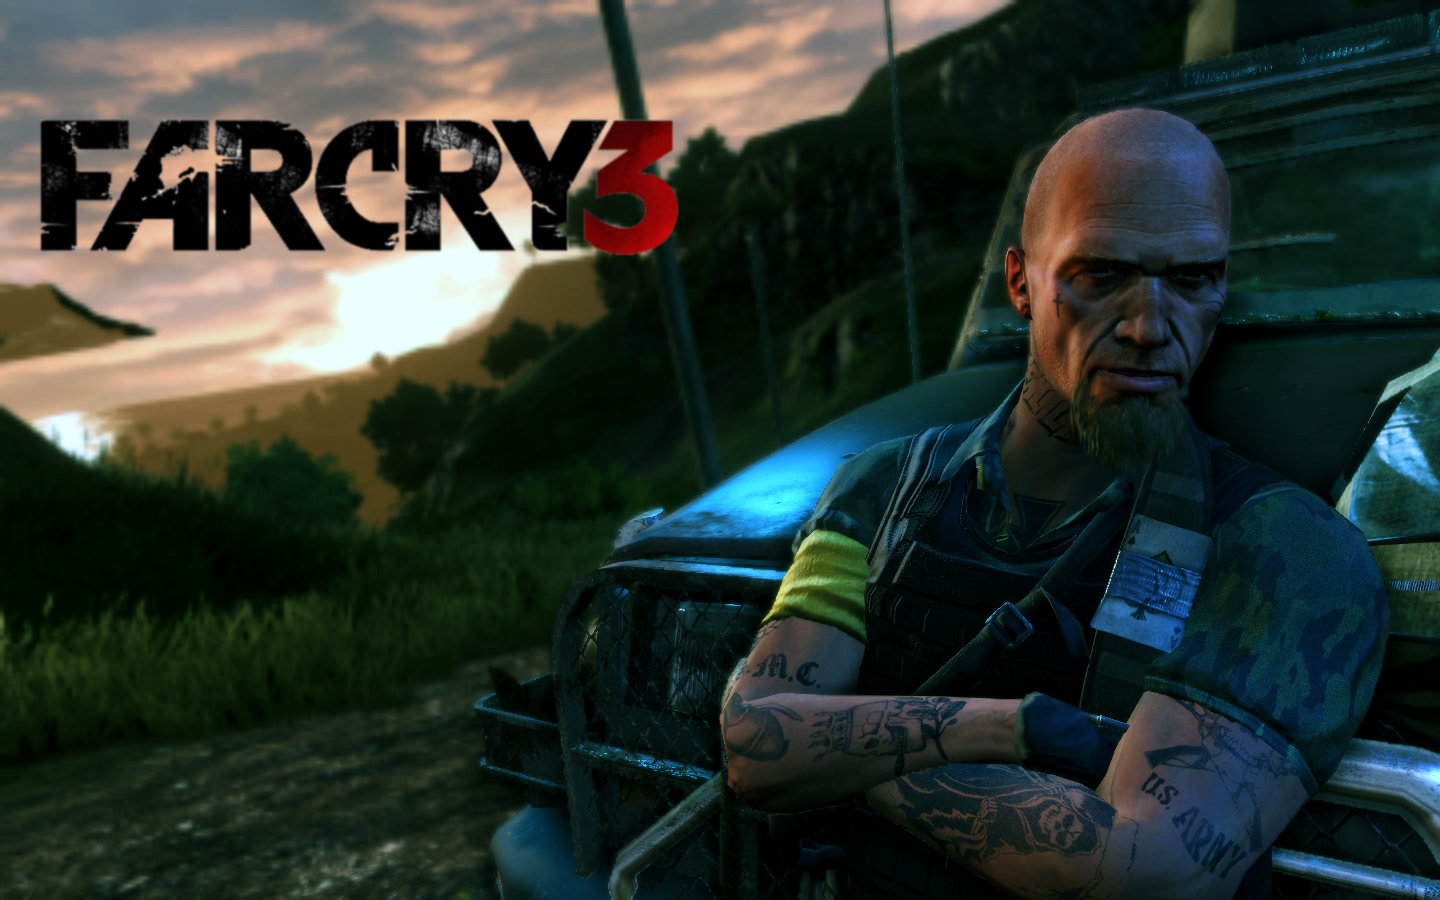 Far Cry 3 Wallpapers 1440x900 Desktop Backgrounds